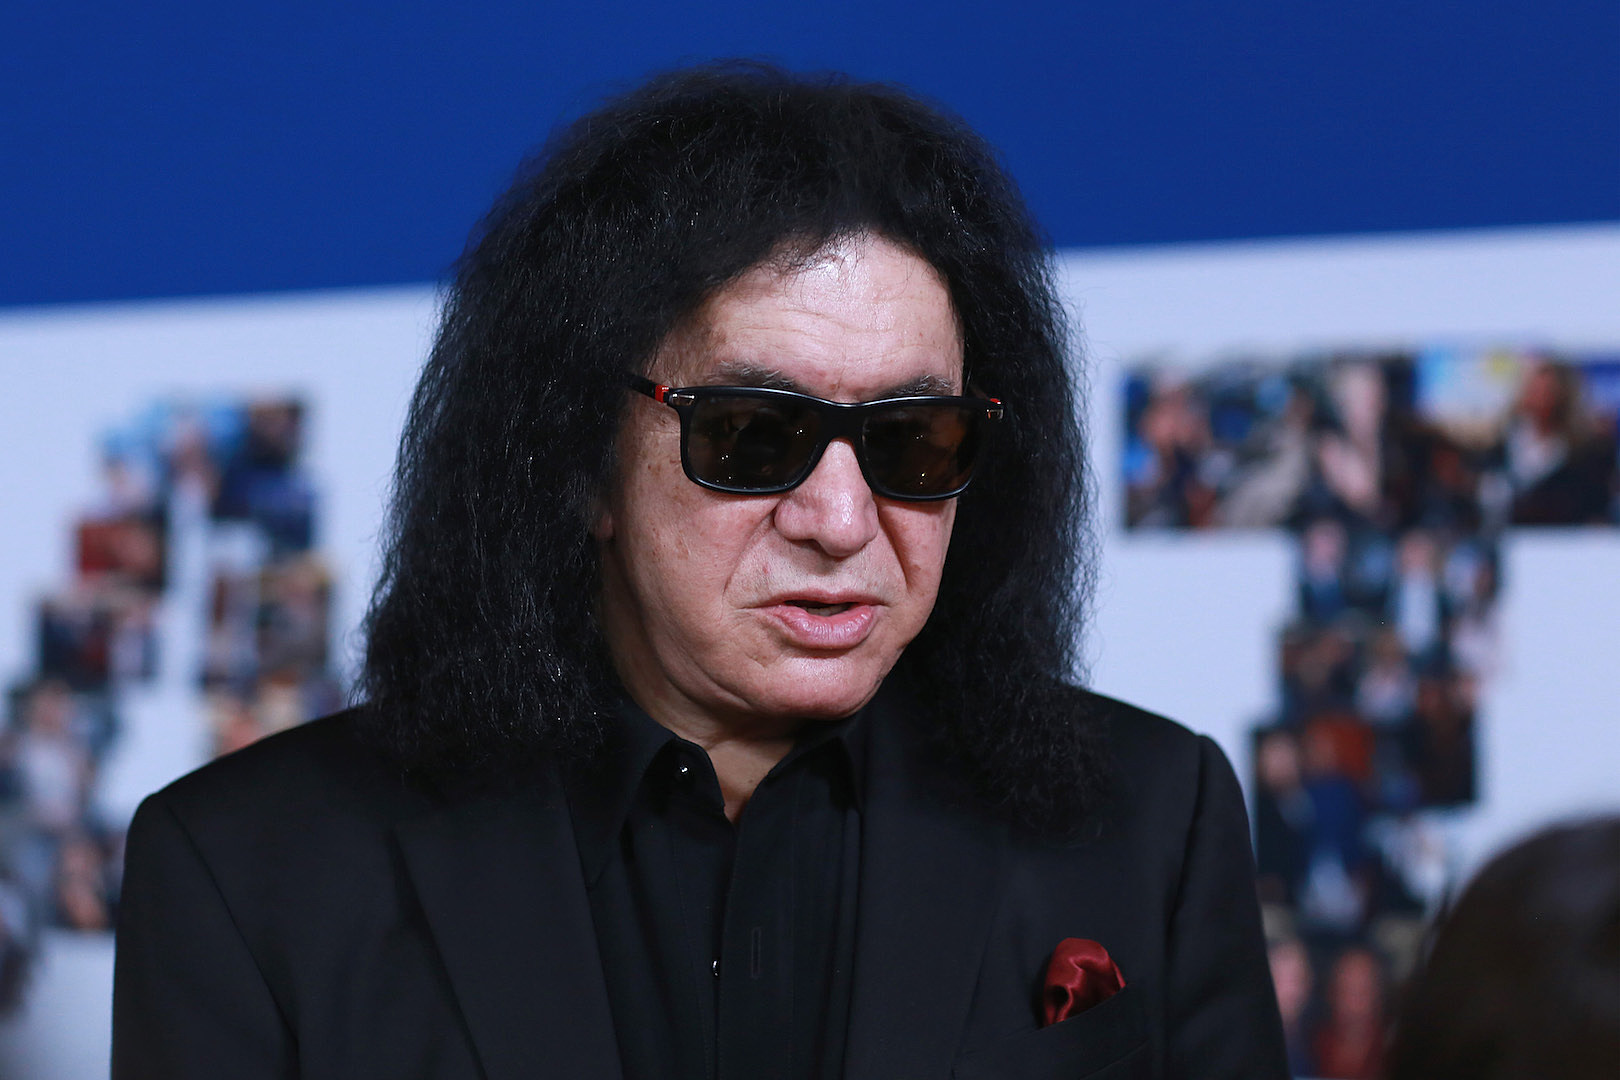 Gene Simmons Nude woman who sued gene simmons for sexual battery wants case